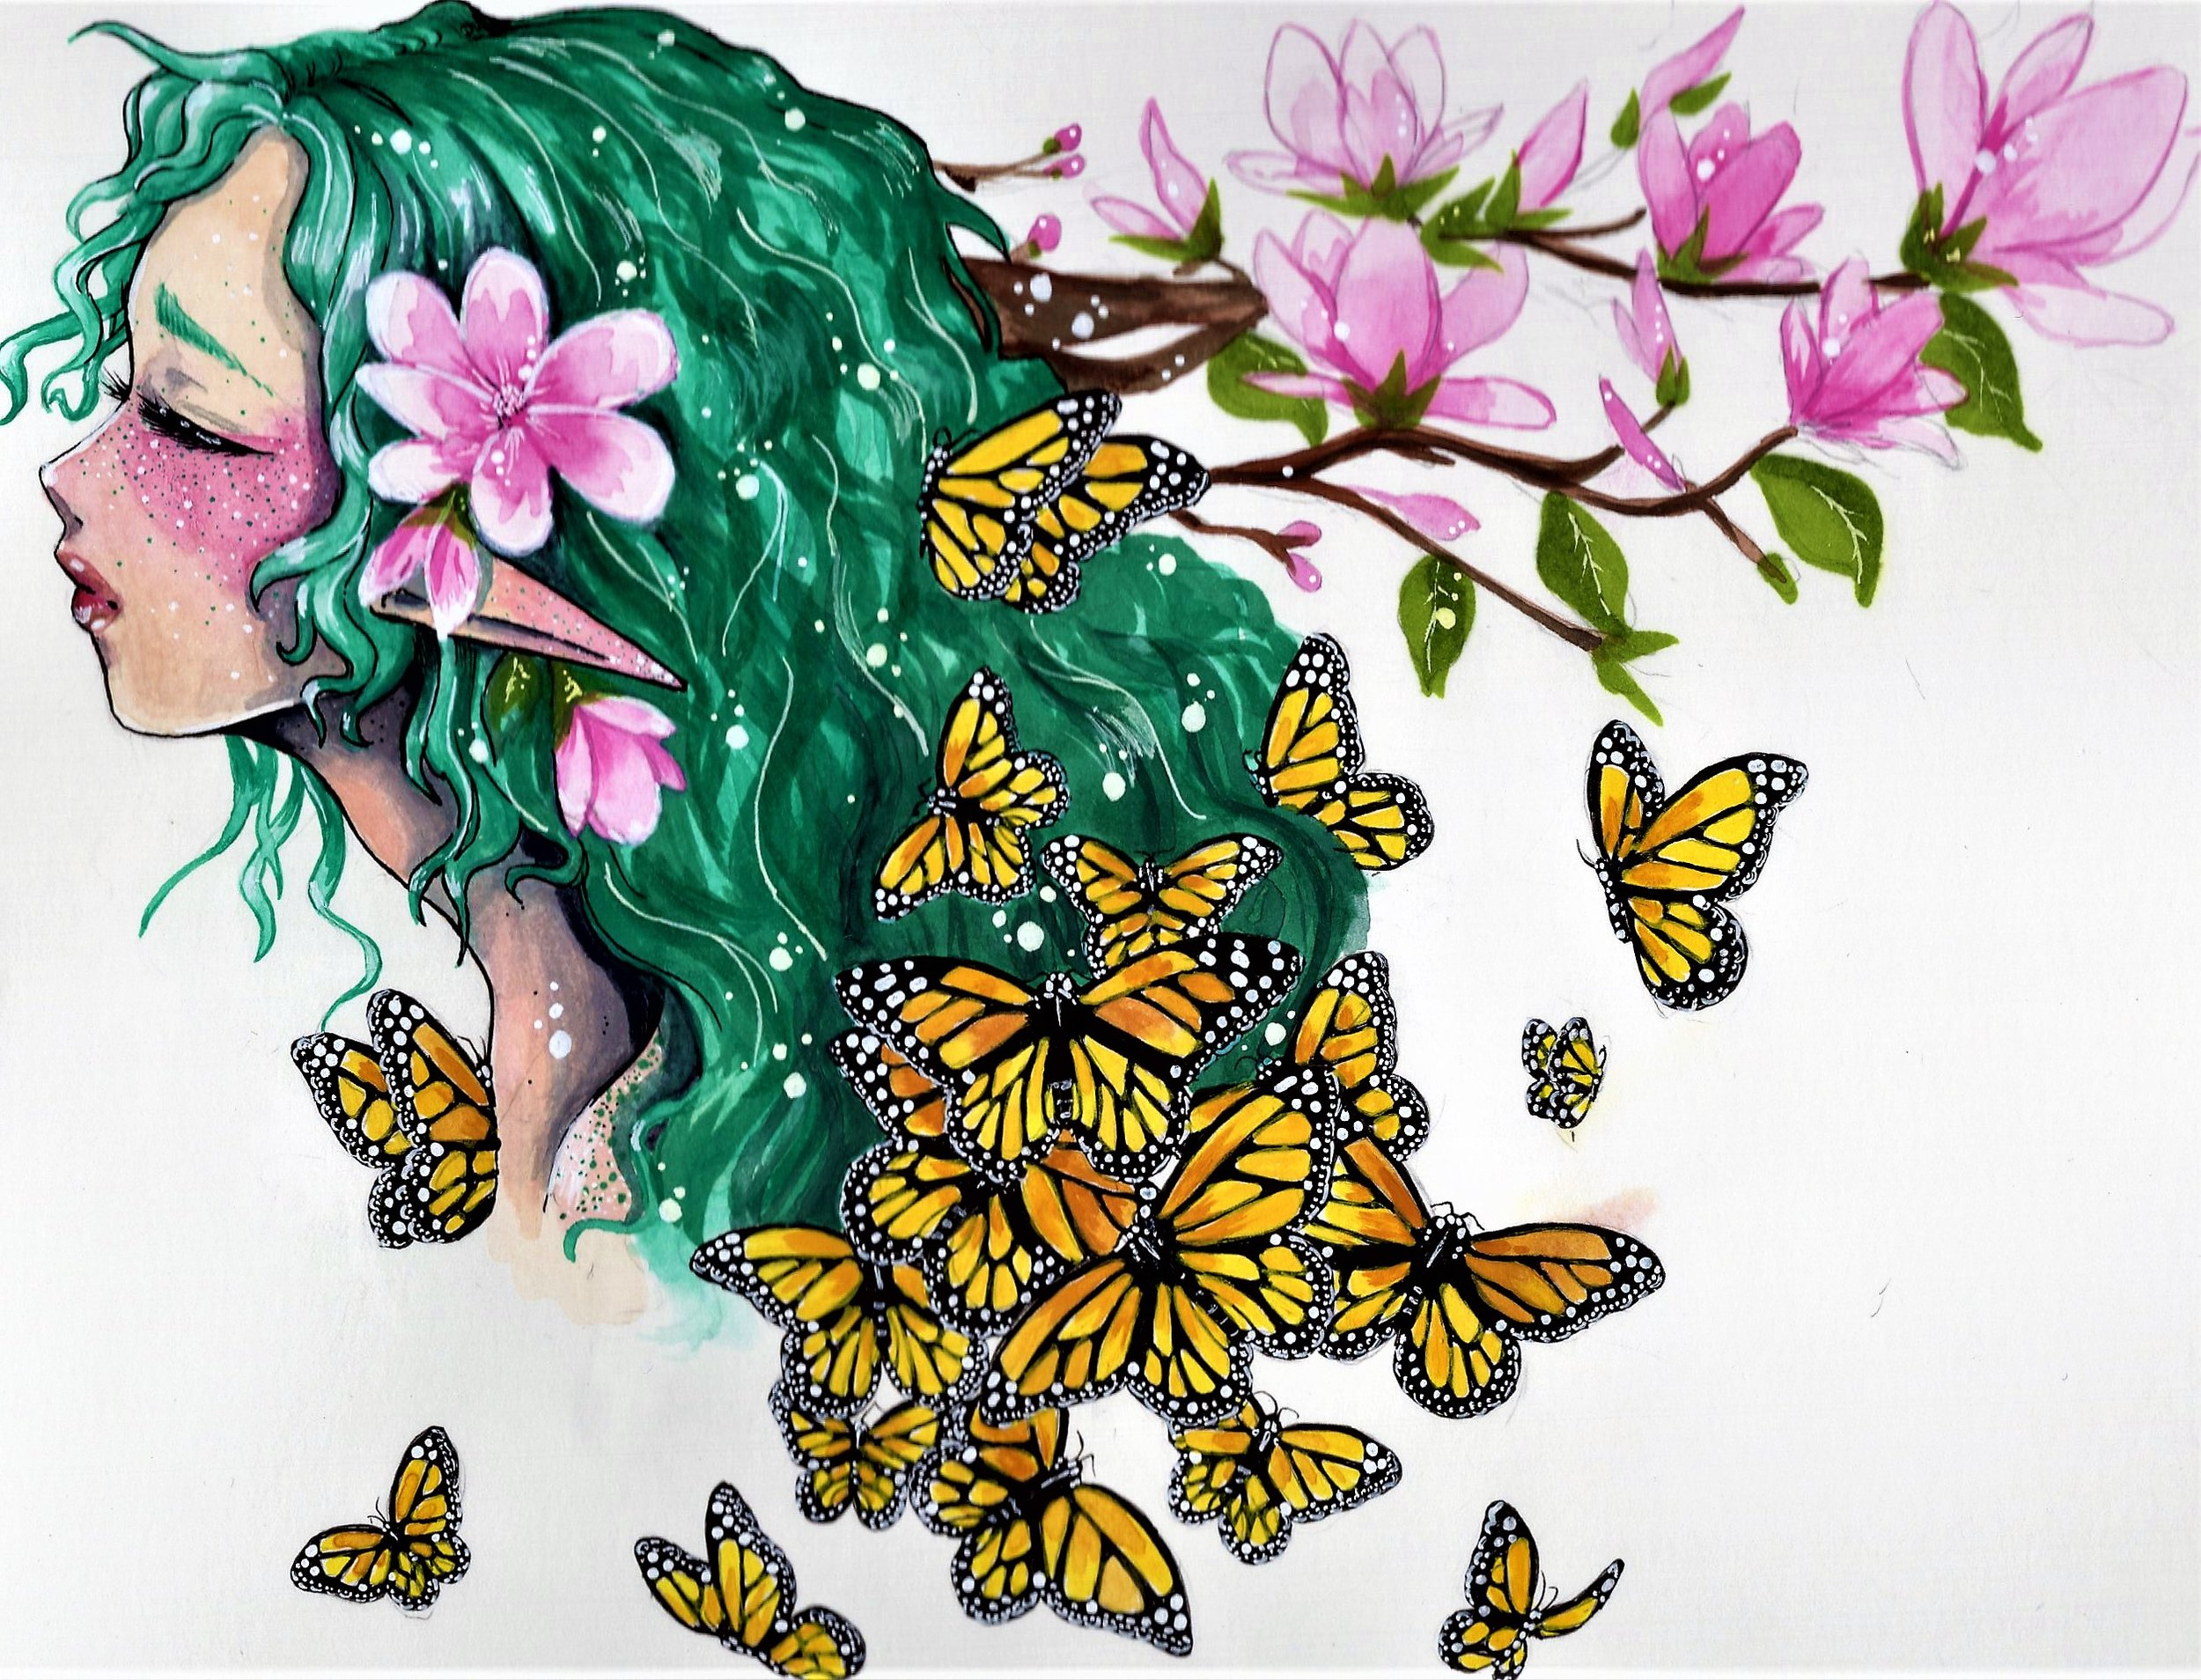 Butterflies are a recurring animal in April Elizabeth's art. (Painting by April Elizabeth)